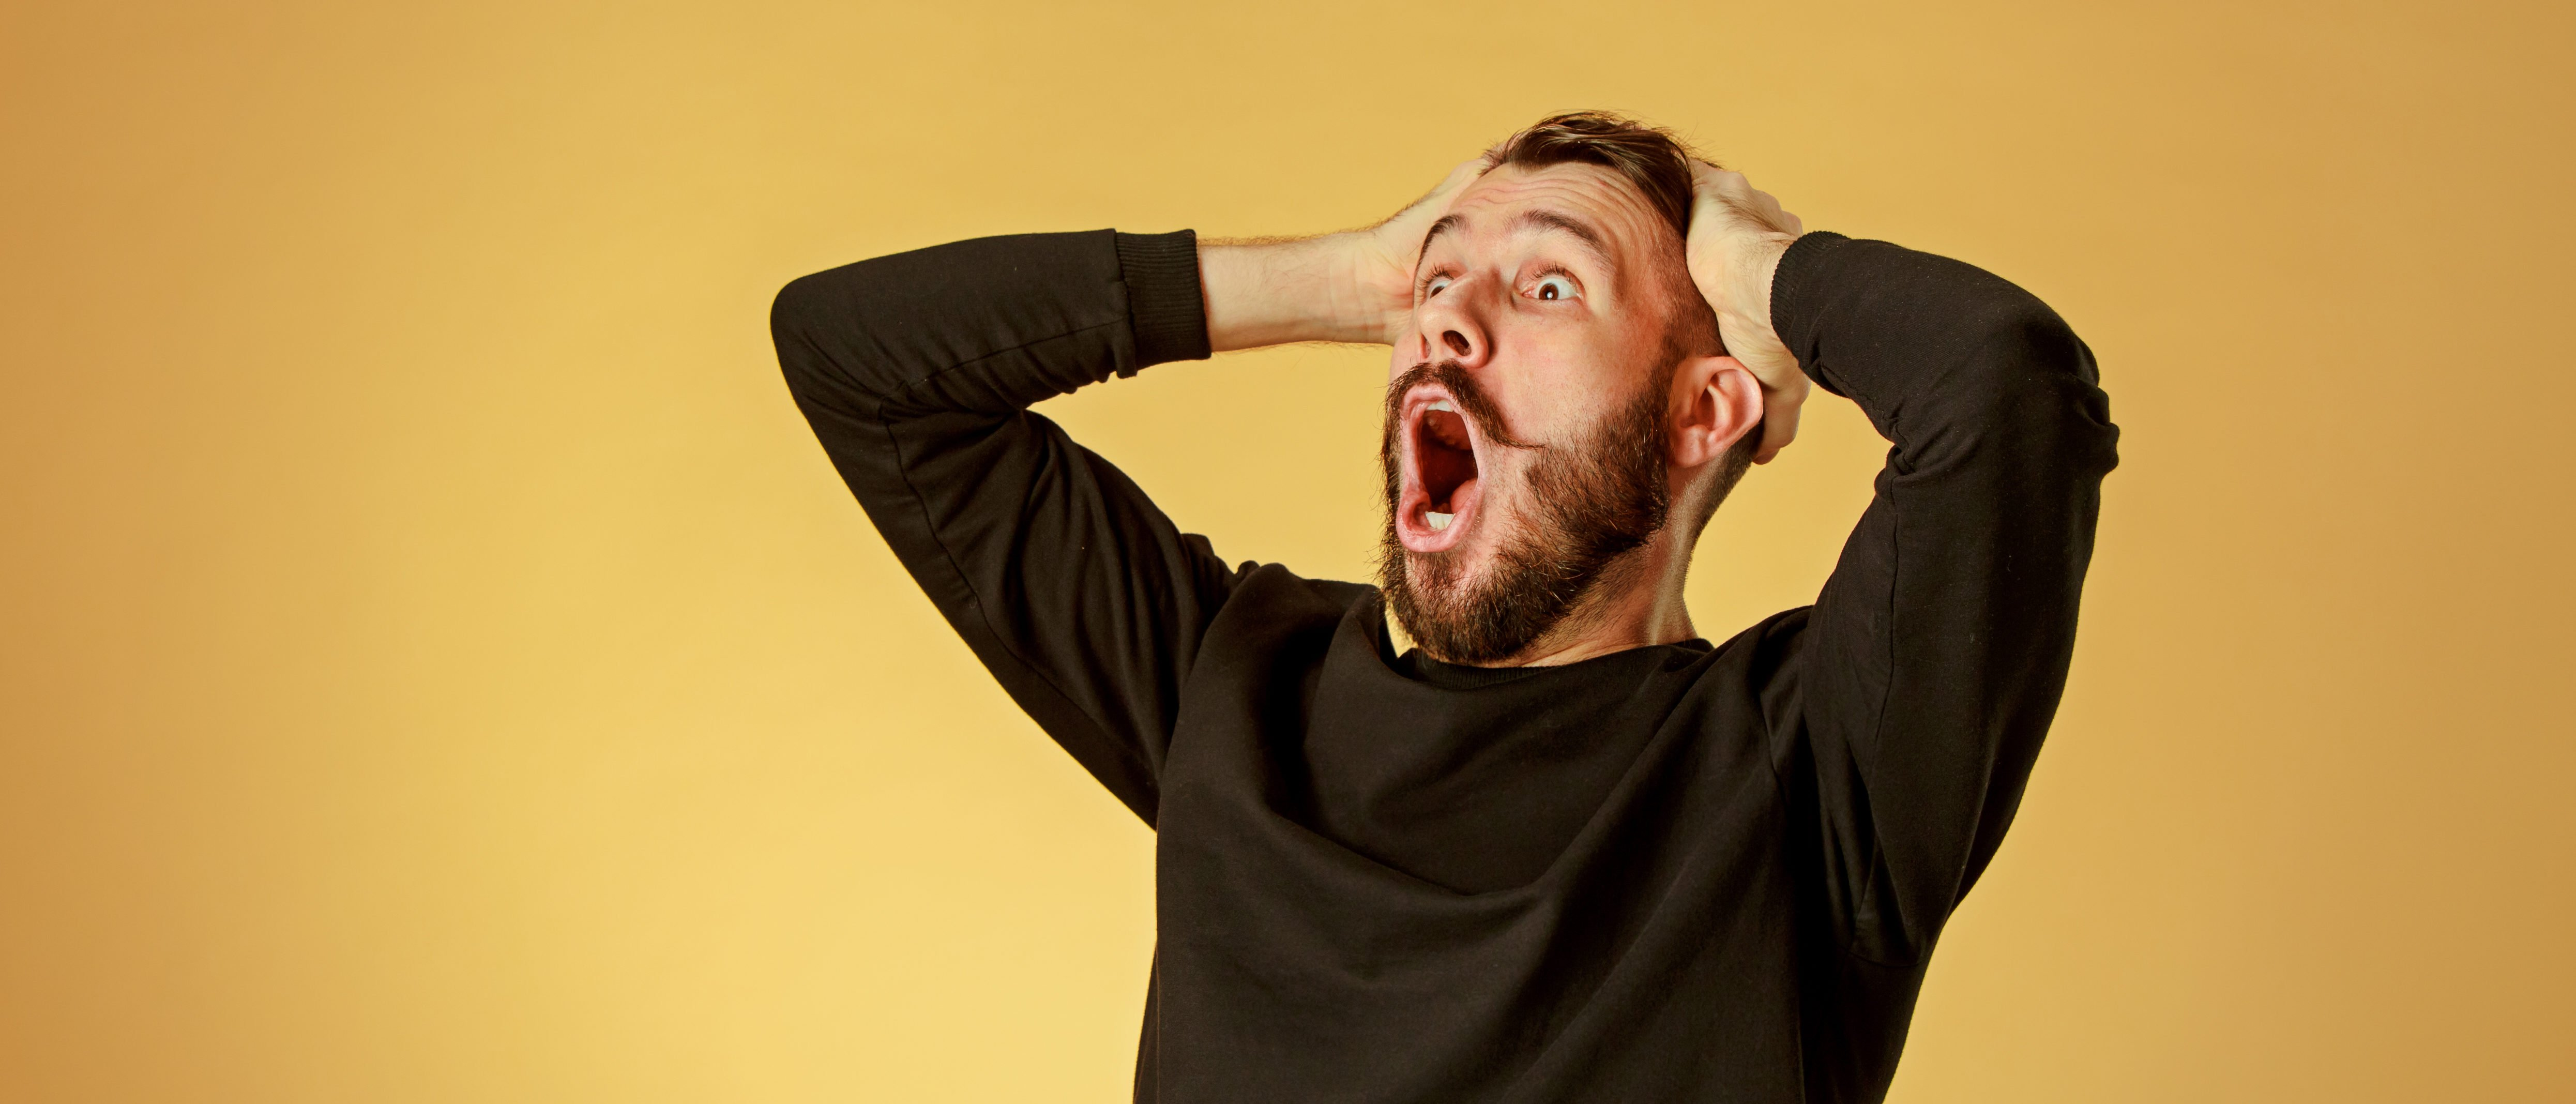 Portrait of young man with shocked facial expression. (Shutterstock/Master1305)